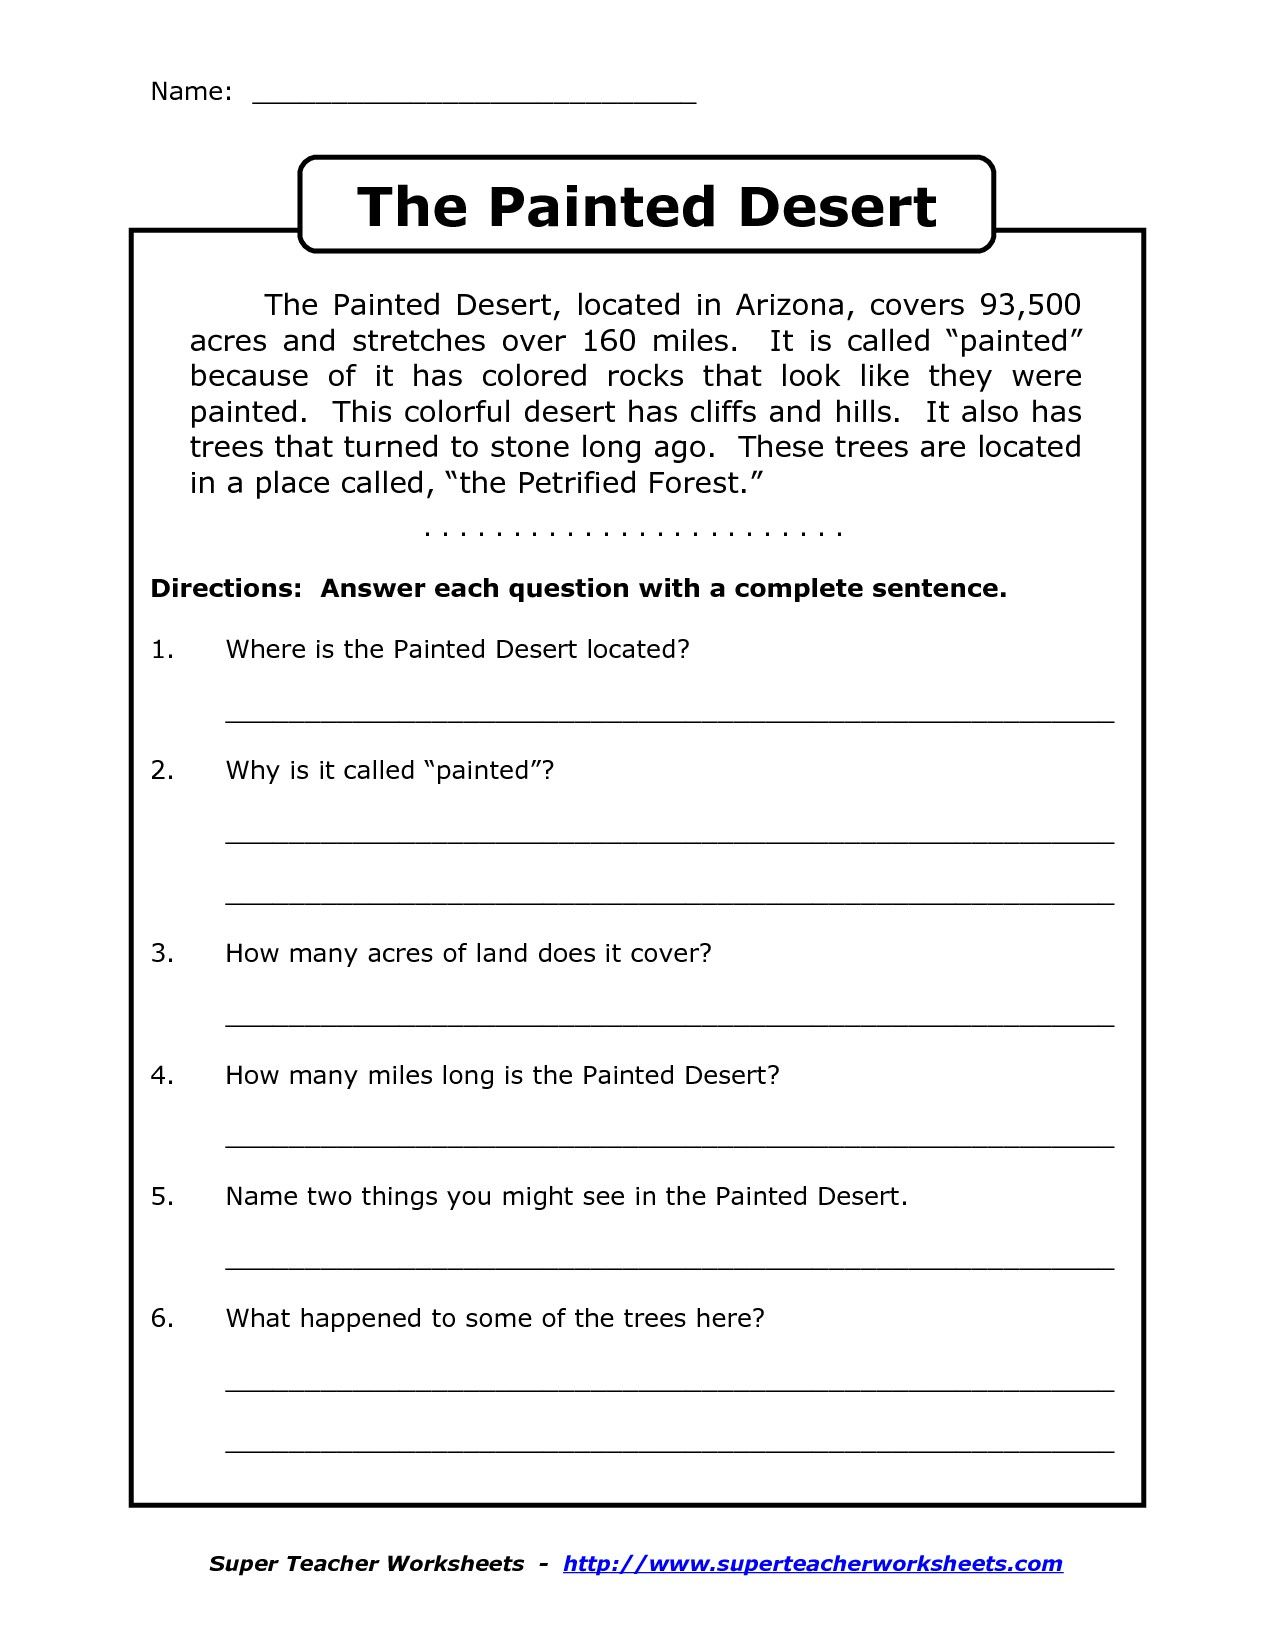 Image result for free printable worksheets for grade 4 comprehension ...